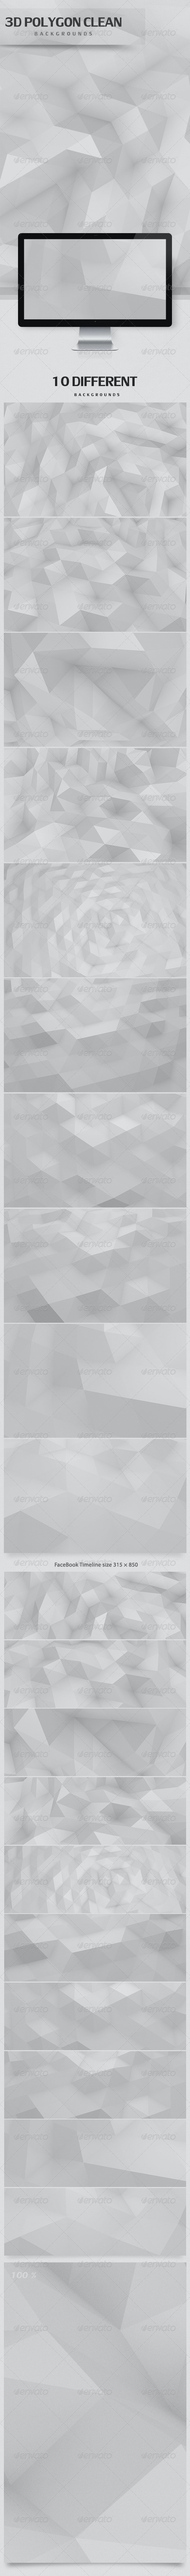 3D Polygon Clean Backgrounds - 3D Backgrounds